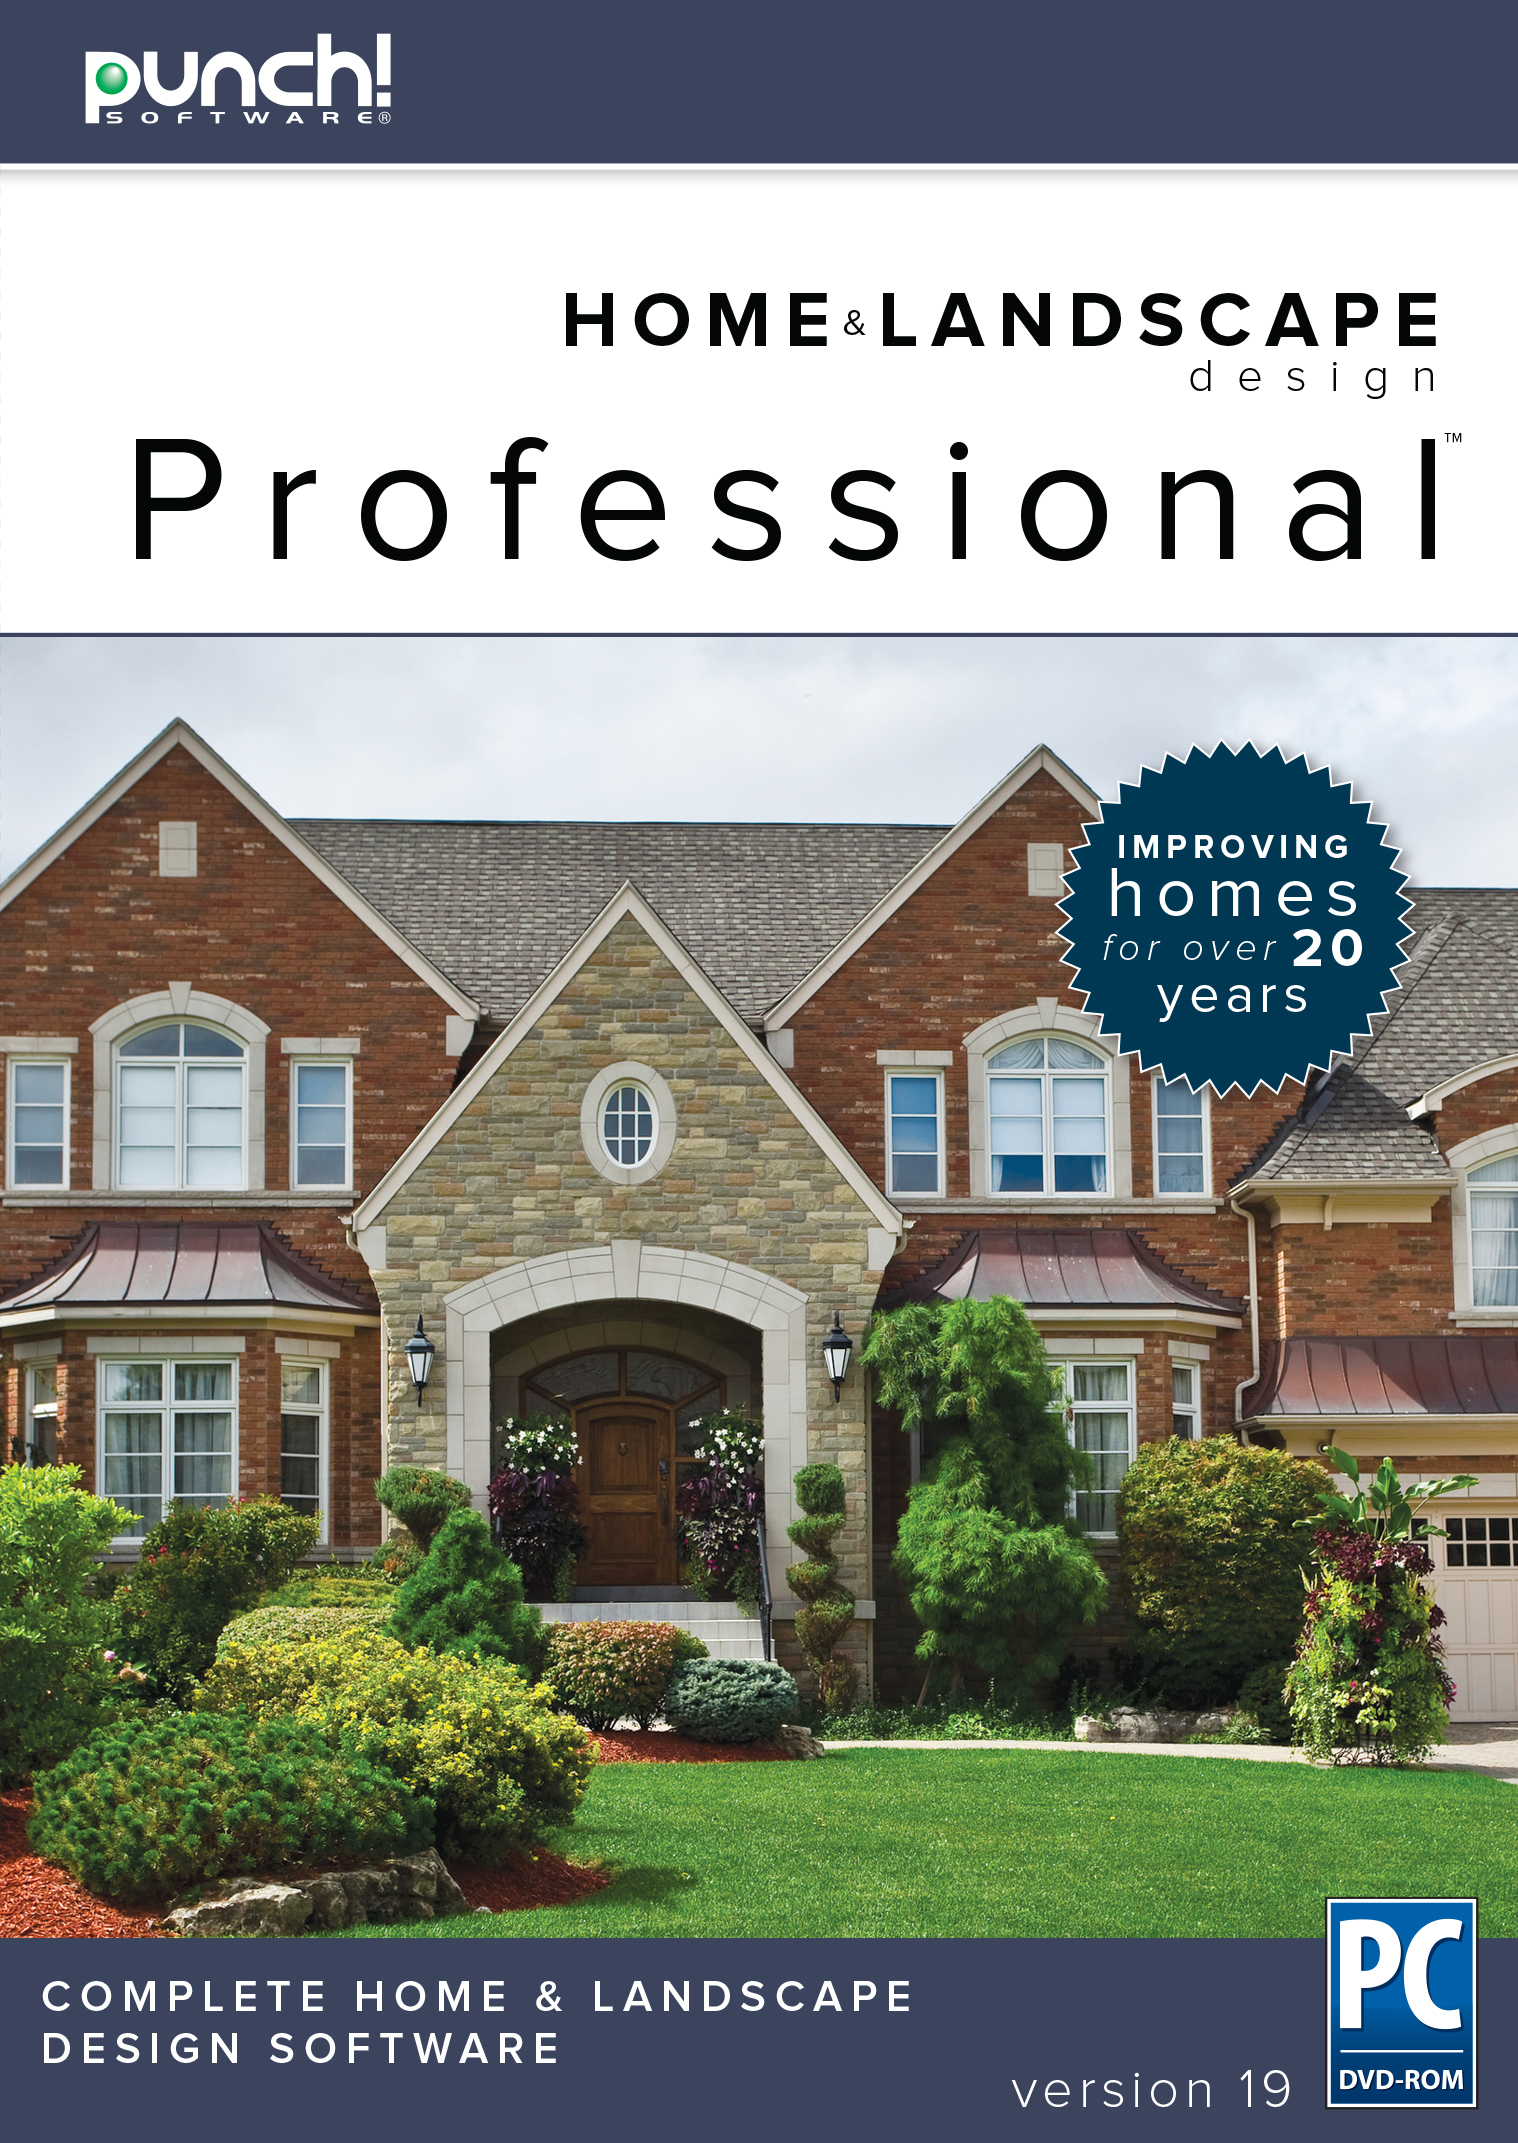 Punch! Home & Landscape Design Professional v19 for Windows PC [Download] by Encore